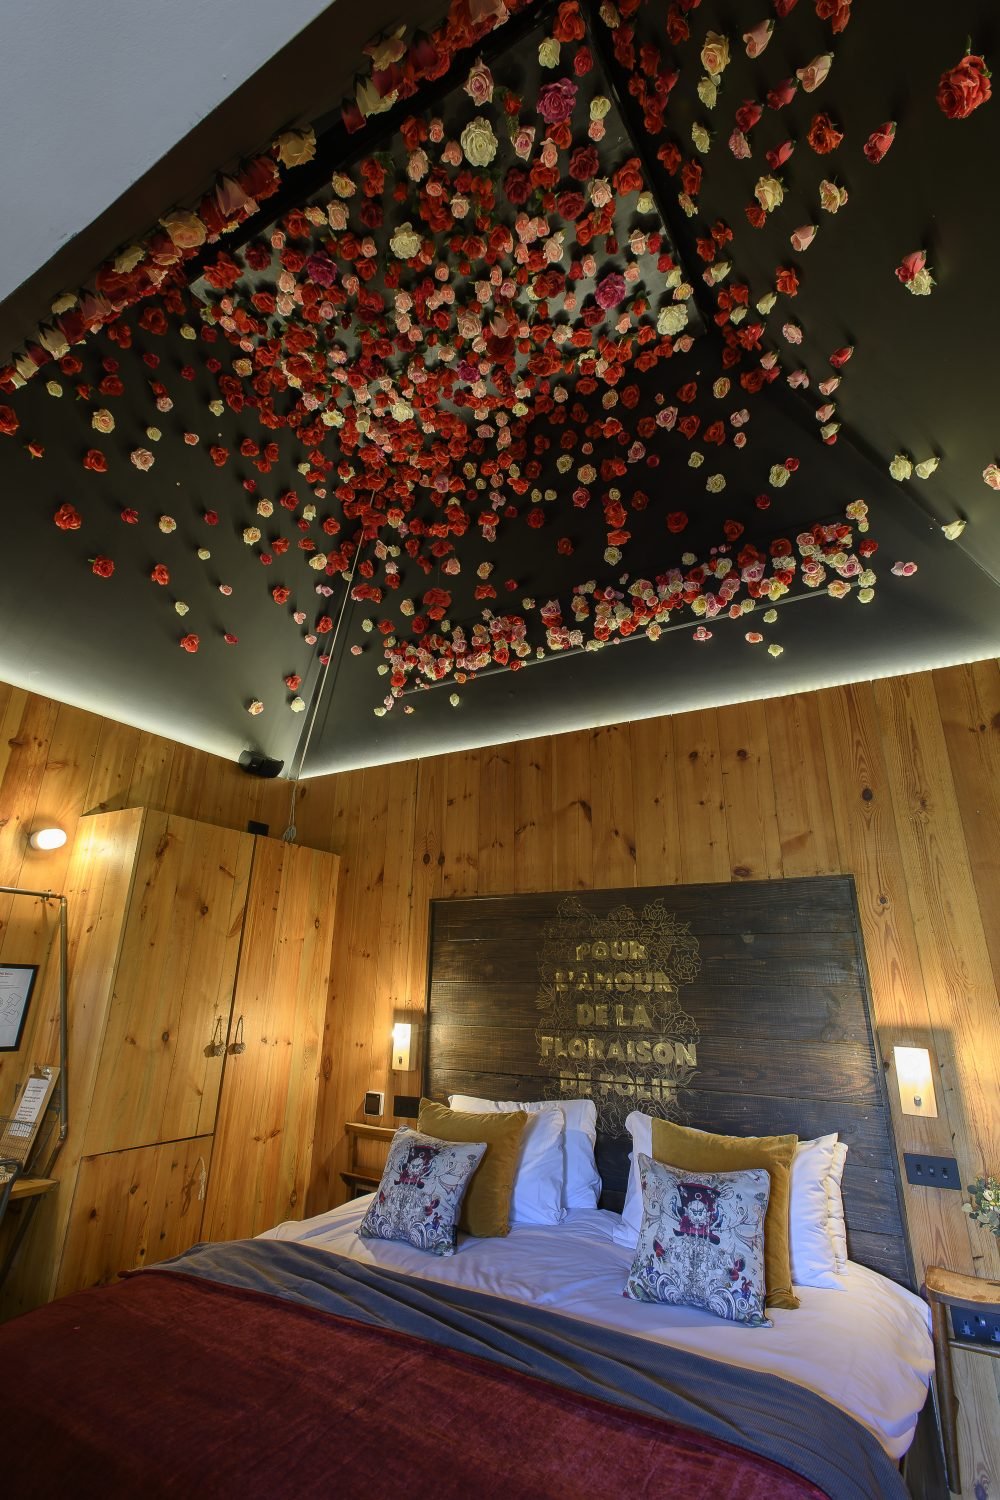 Designed for romance, Pour L'Amour is in a secluded location with 100 roses floating from the ceiling